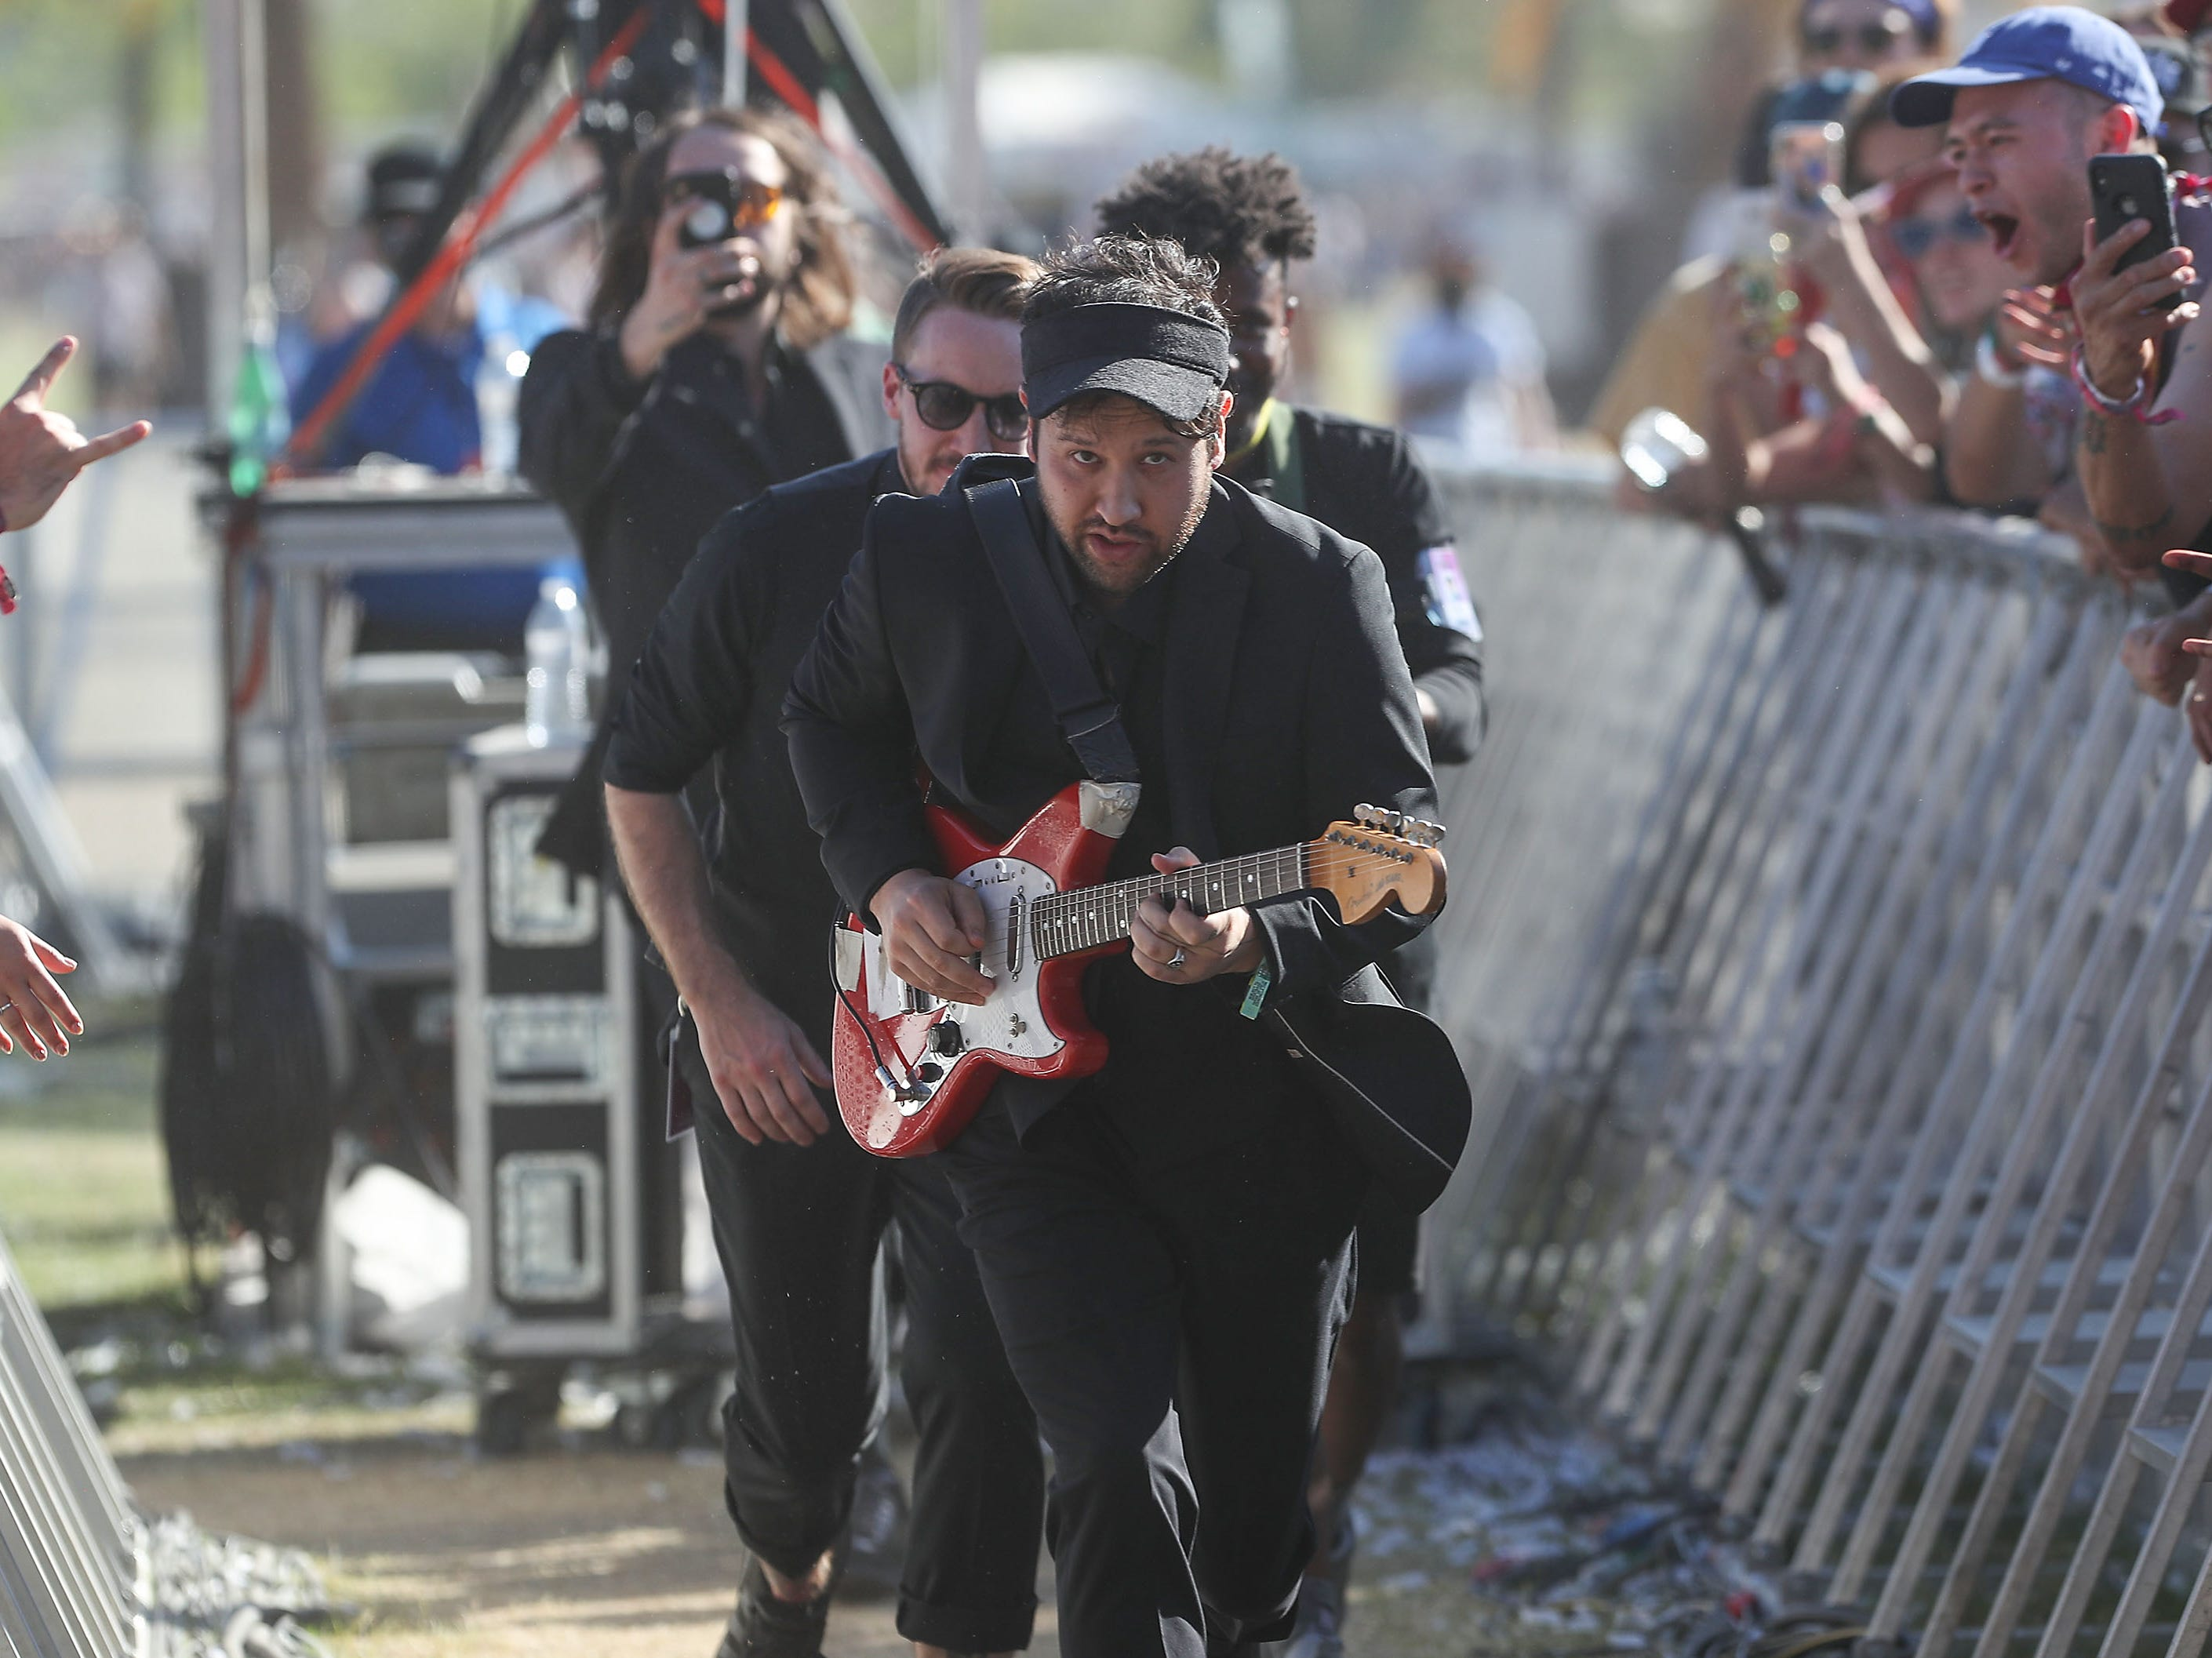 Unknown Mortal Orchestra performs at the Coachella Valley Music and Arts Festival in Indio, April 21, 2019.